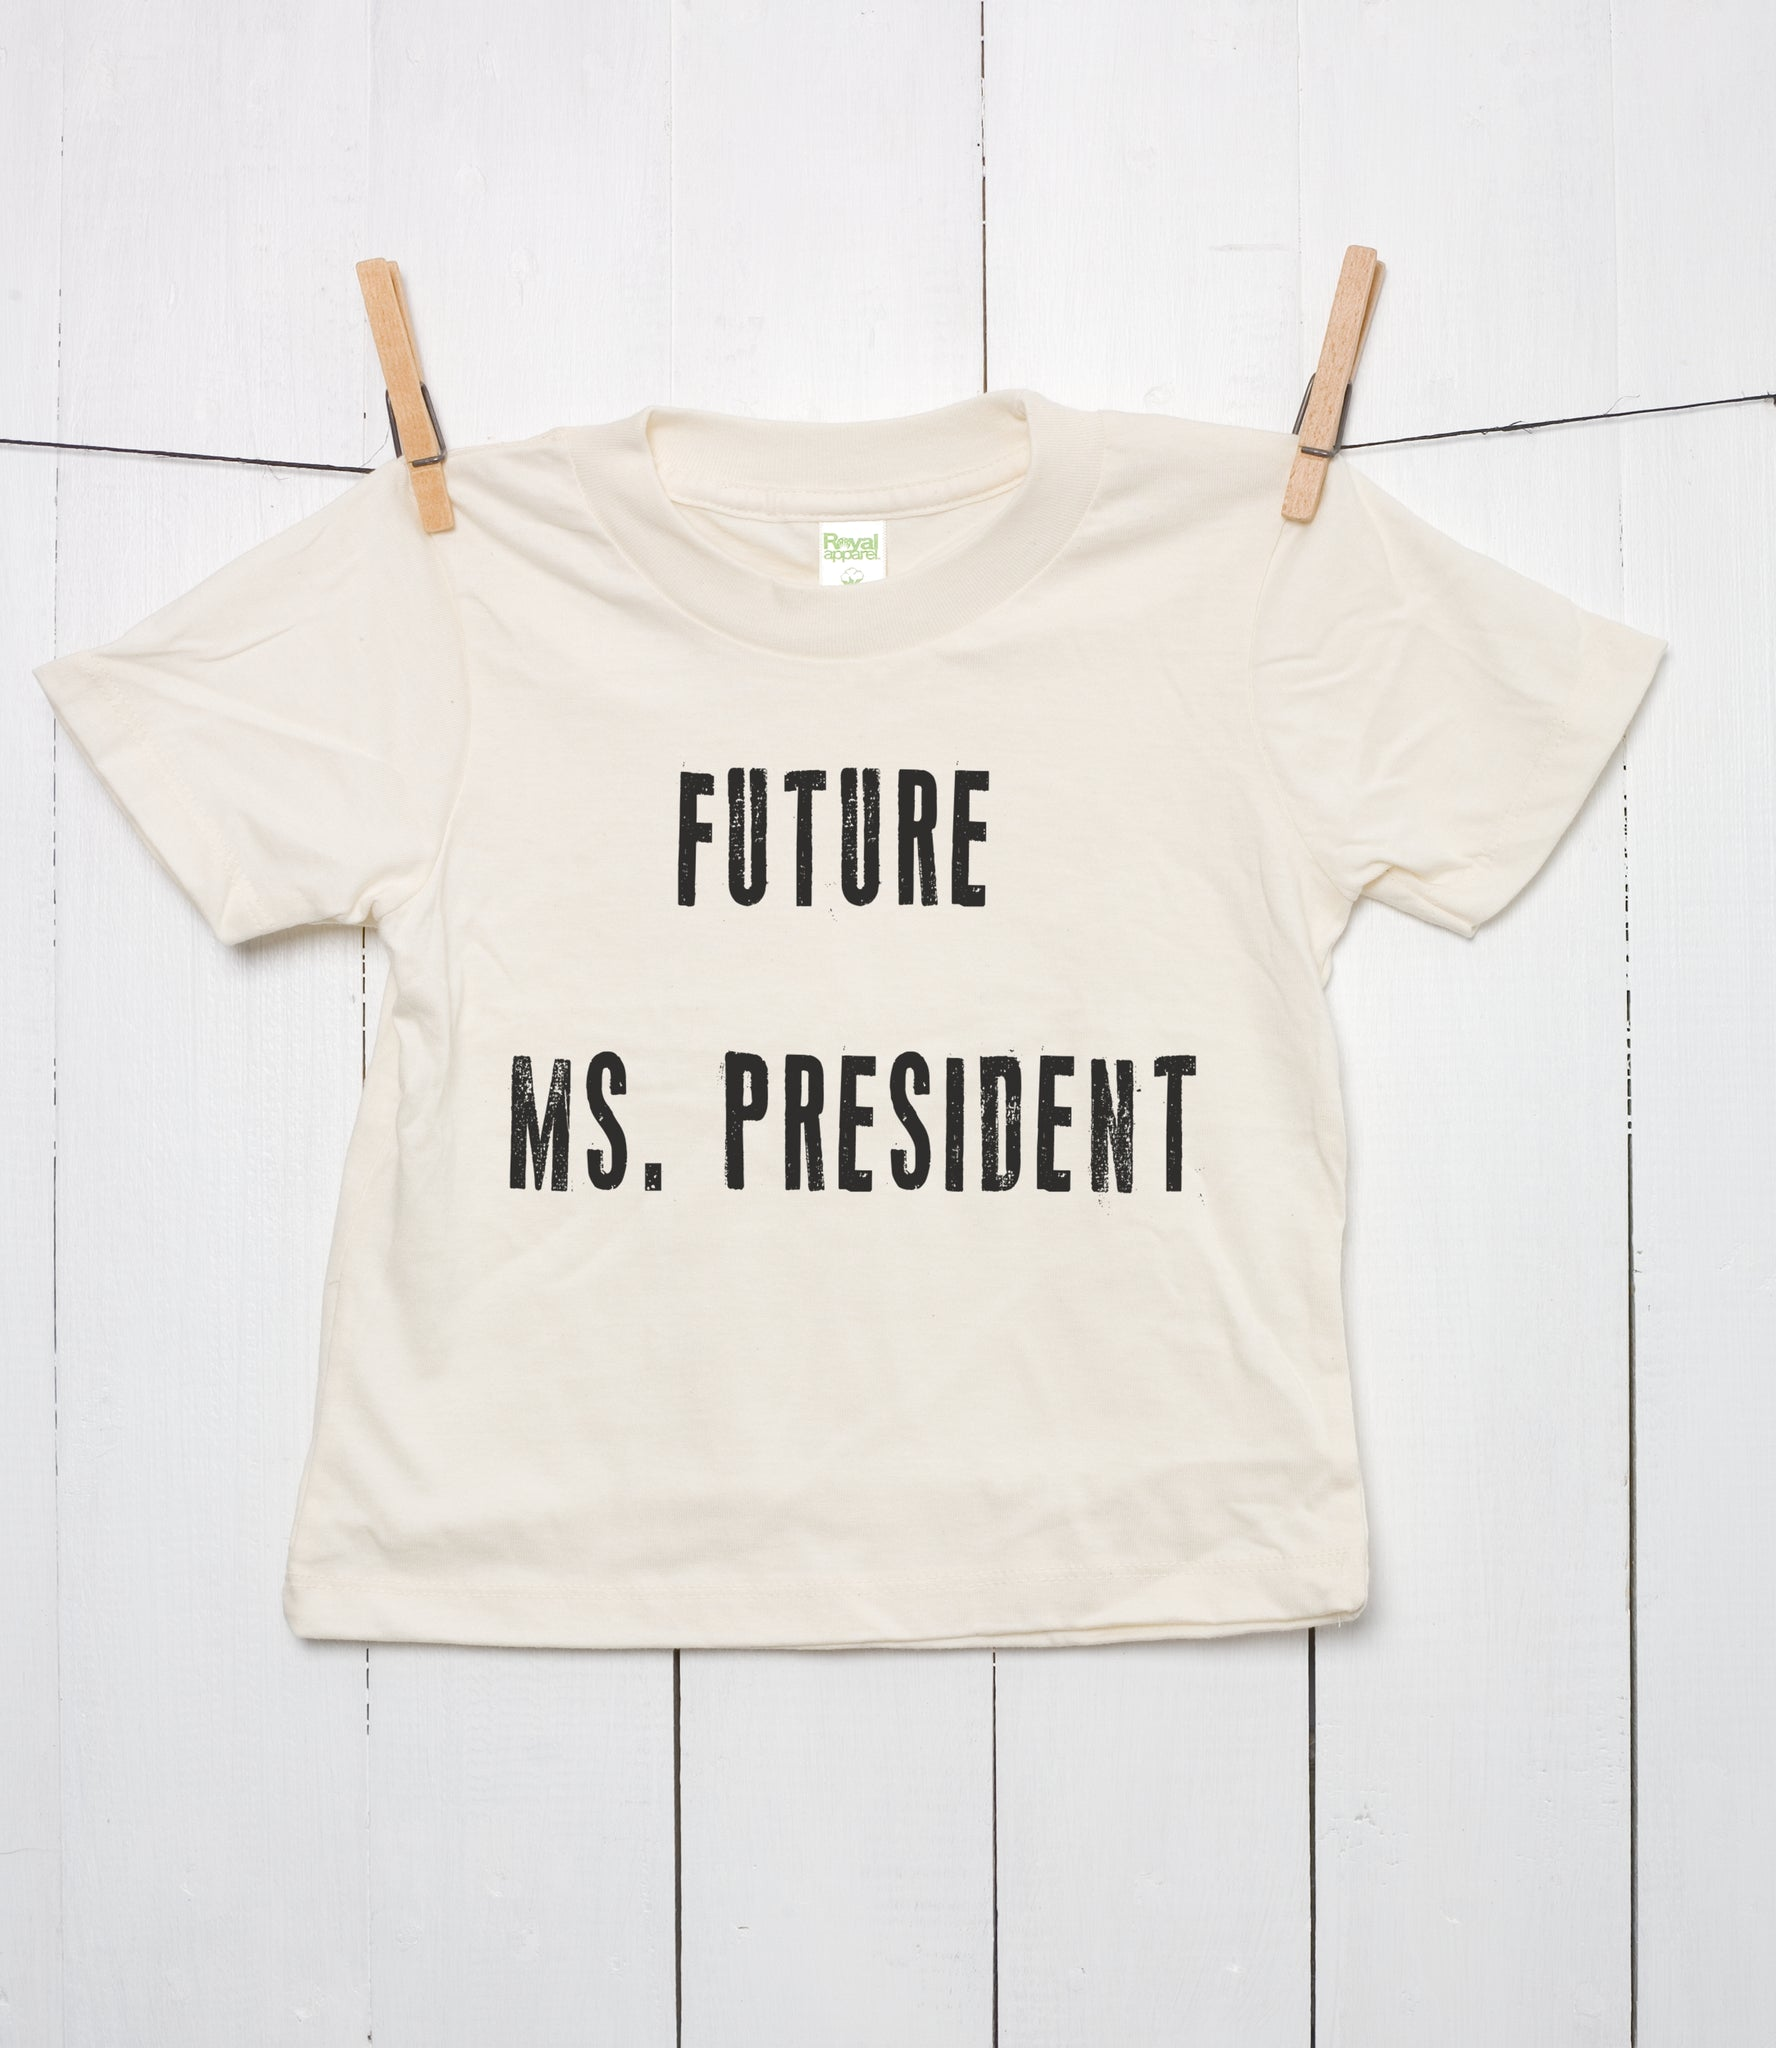 Future Ms President Toddler Organic Cotton T Shirt